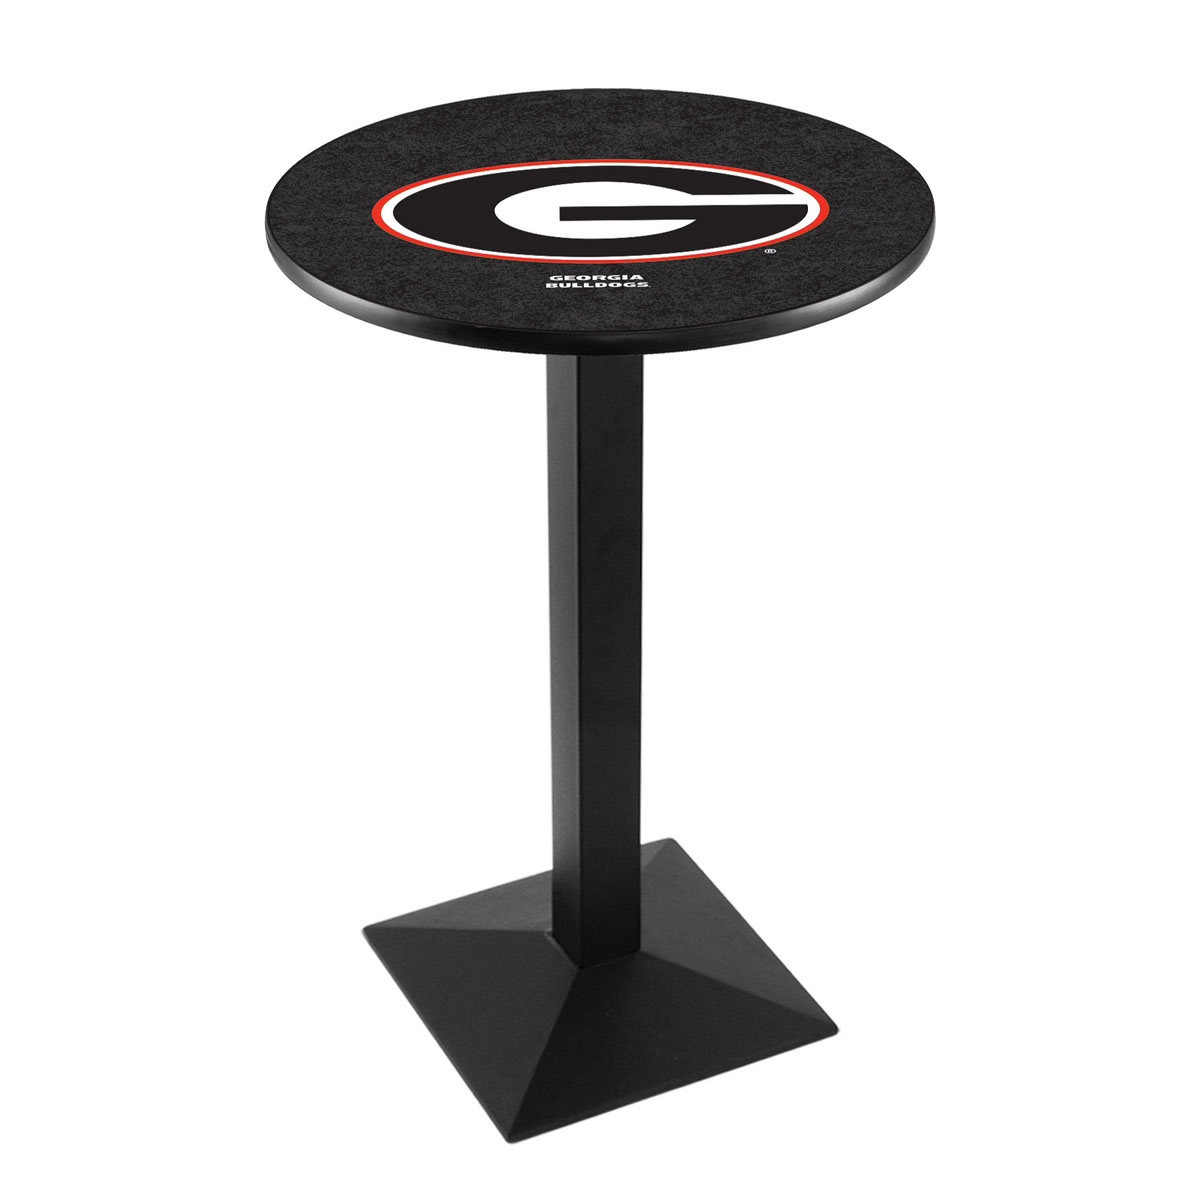 Remarkable University Georgia Logo Pub Bar Table Square Stand Product Photo